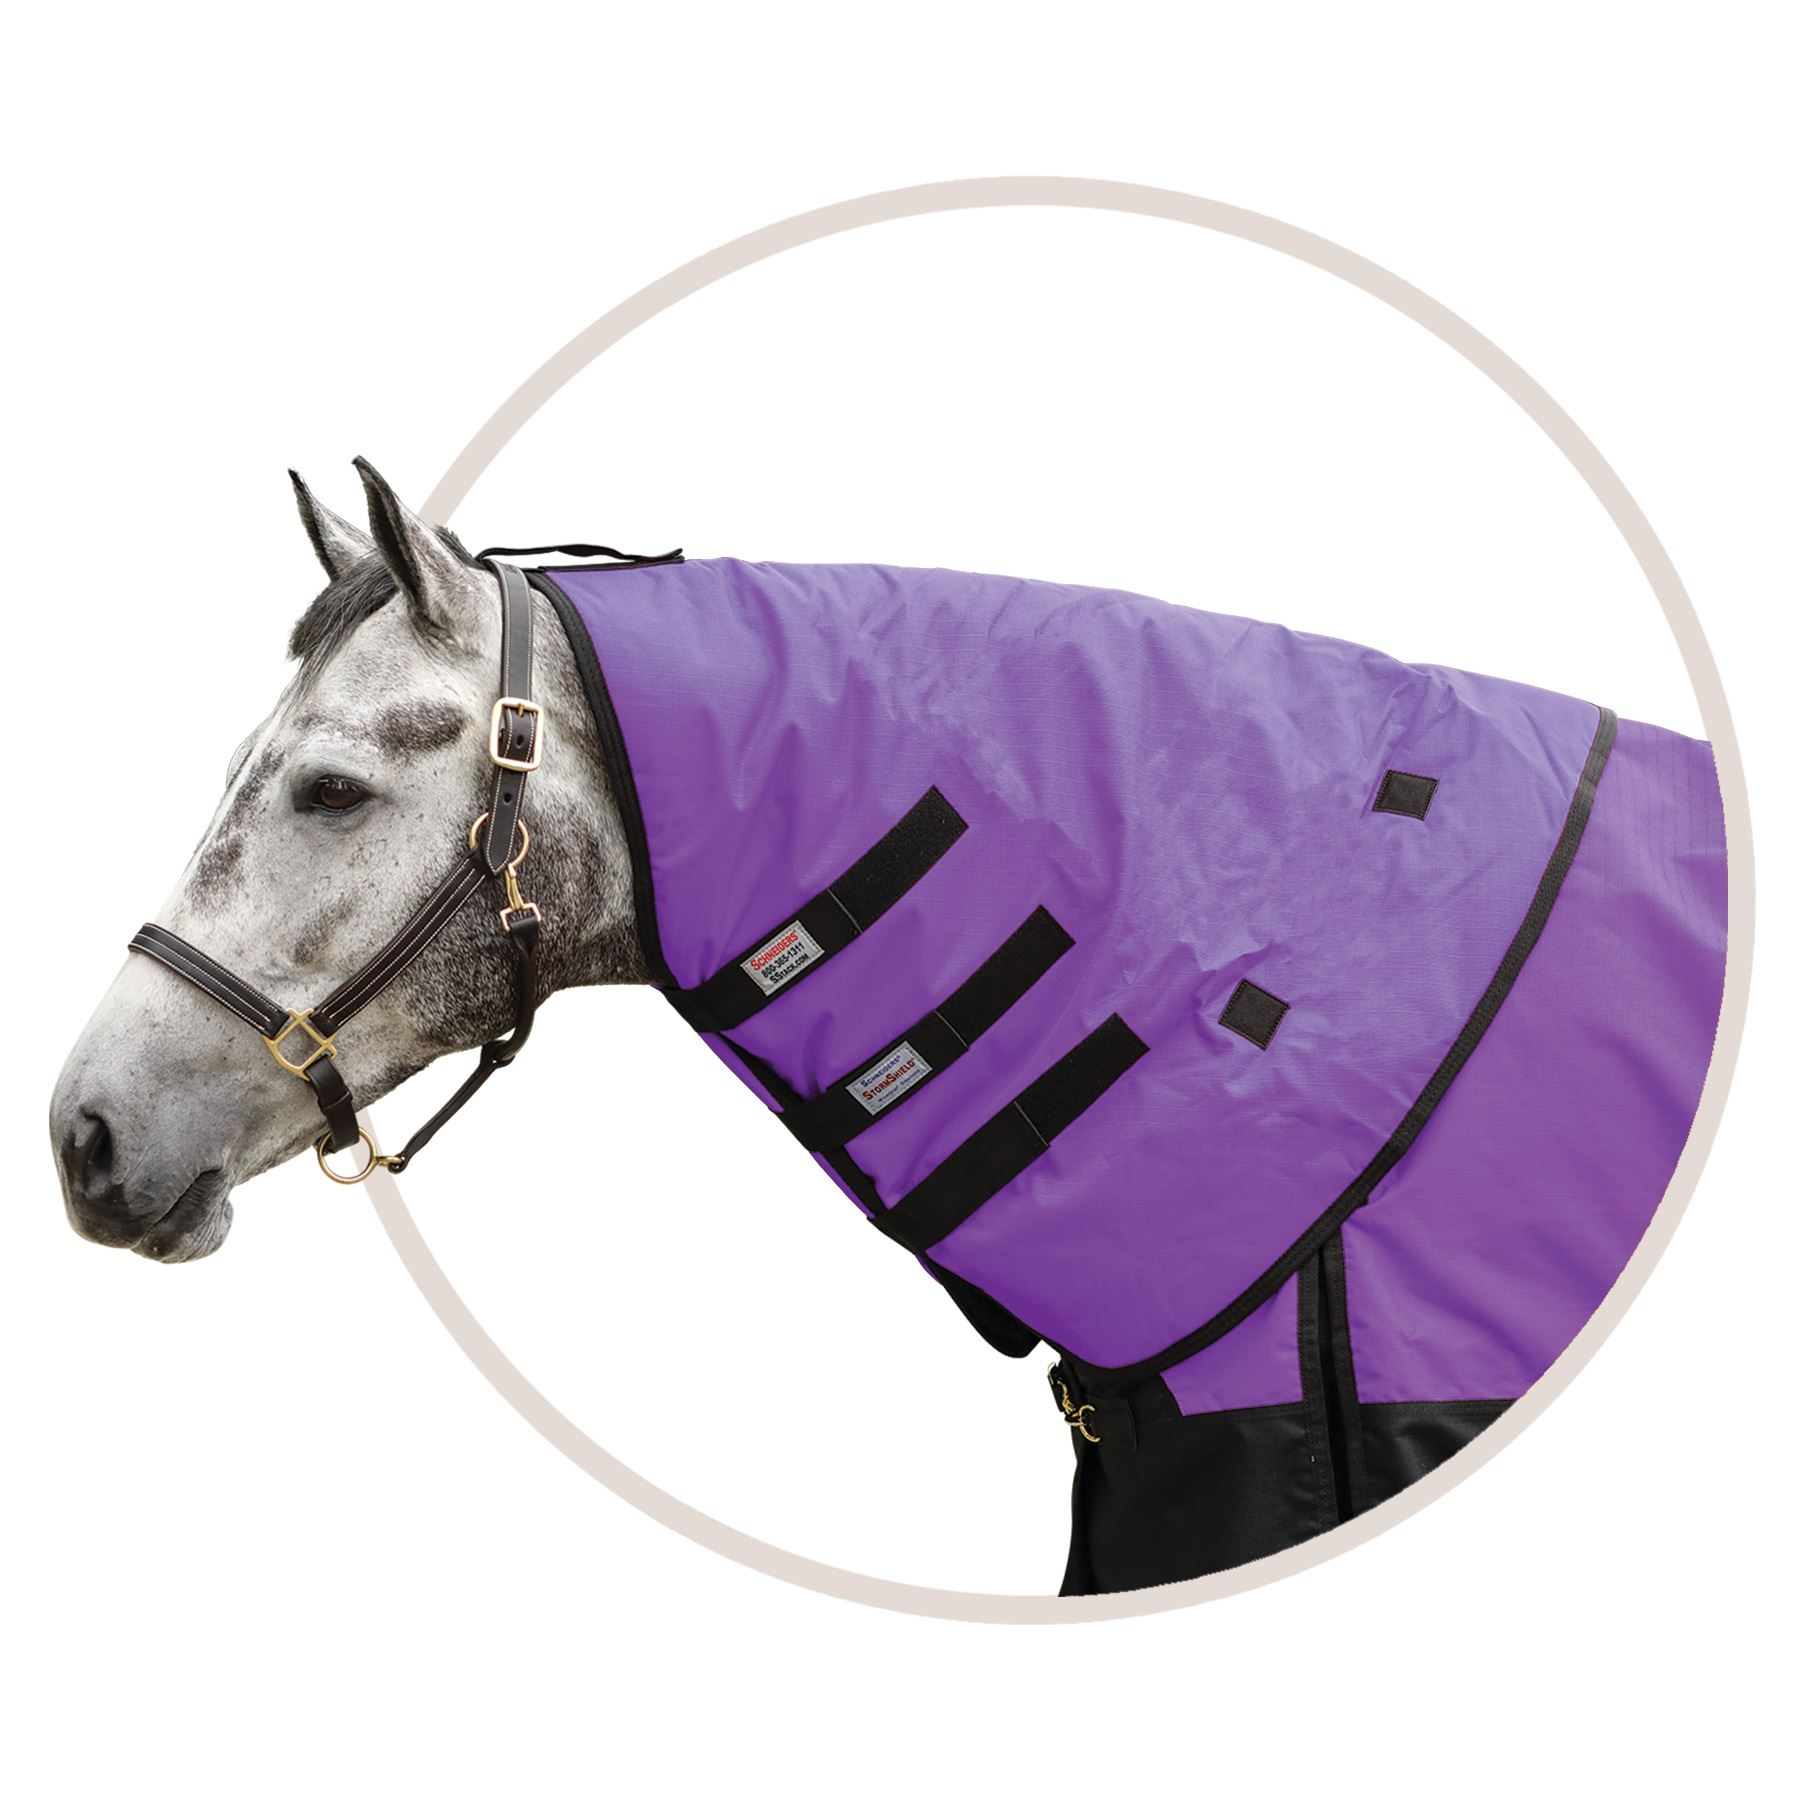 StormShield® Contour Collar CLASSIC Waterproof /Breathable Turnout Neck Cover